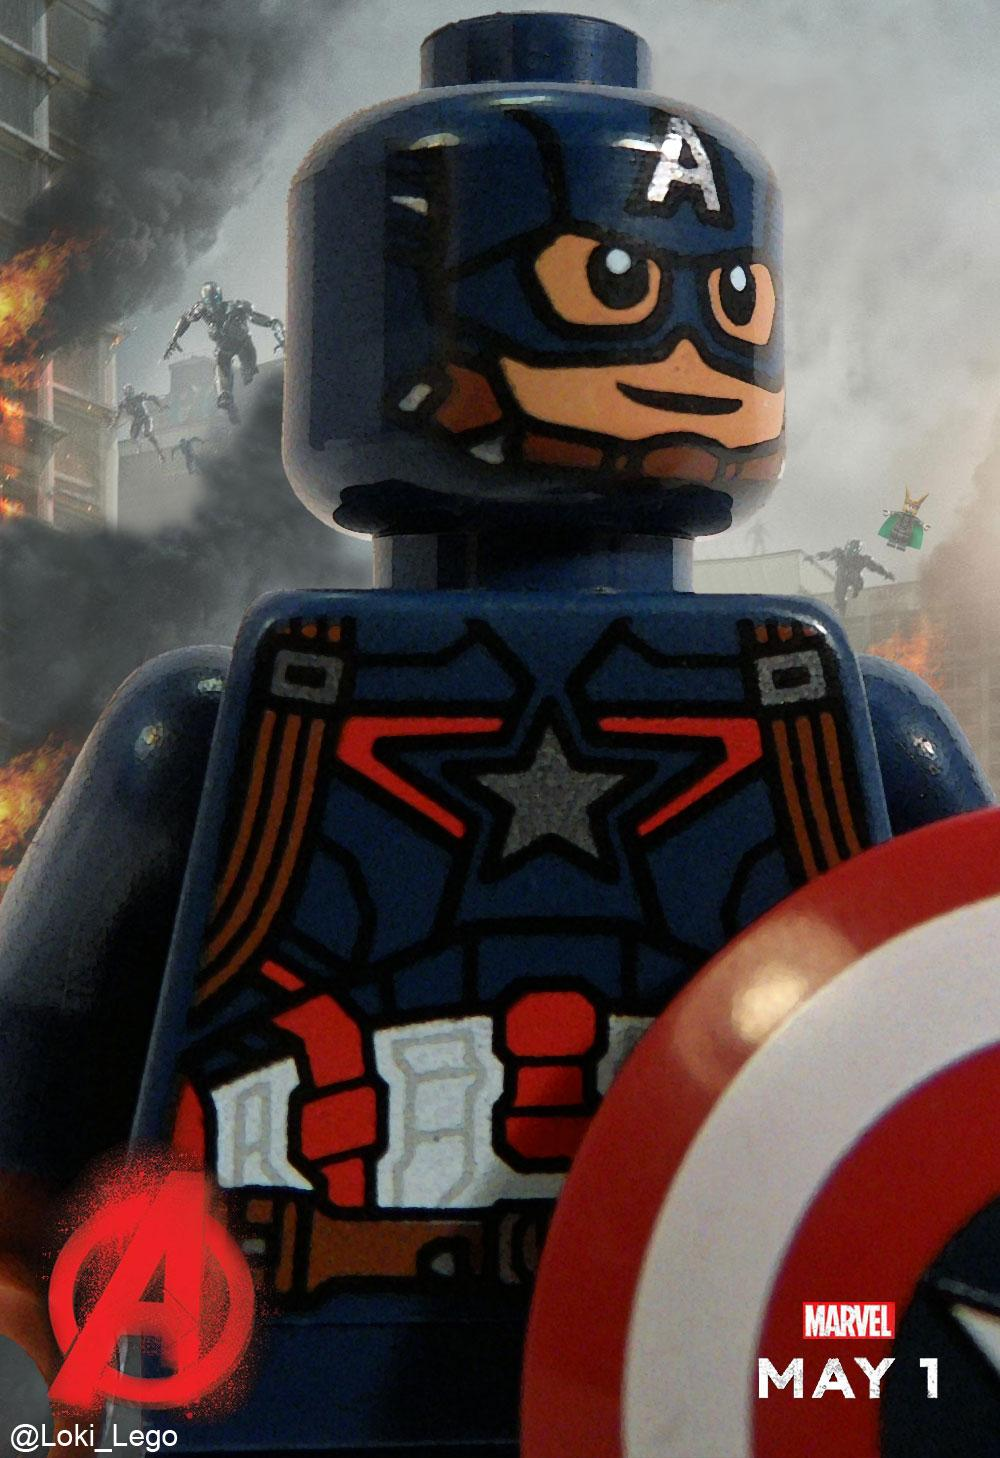 Lego avengers age of ultron captain america character poster future ruler of midgard - Lego capitaine america ...